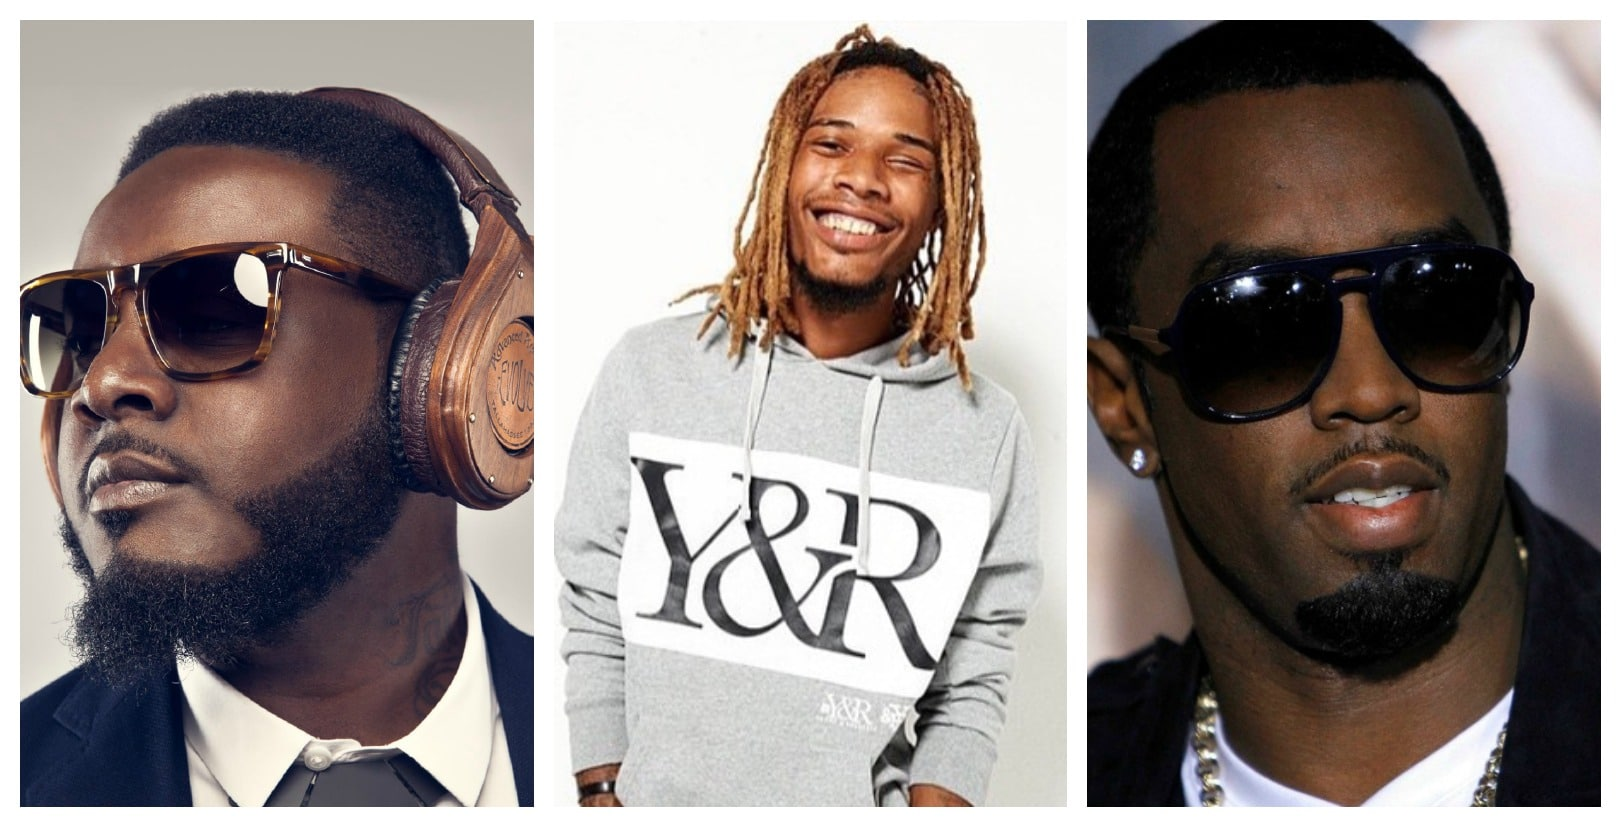 Photo of Nuova musica inedita da T-Pain, Fetty Wap e Puff Daddy